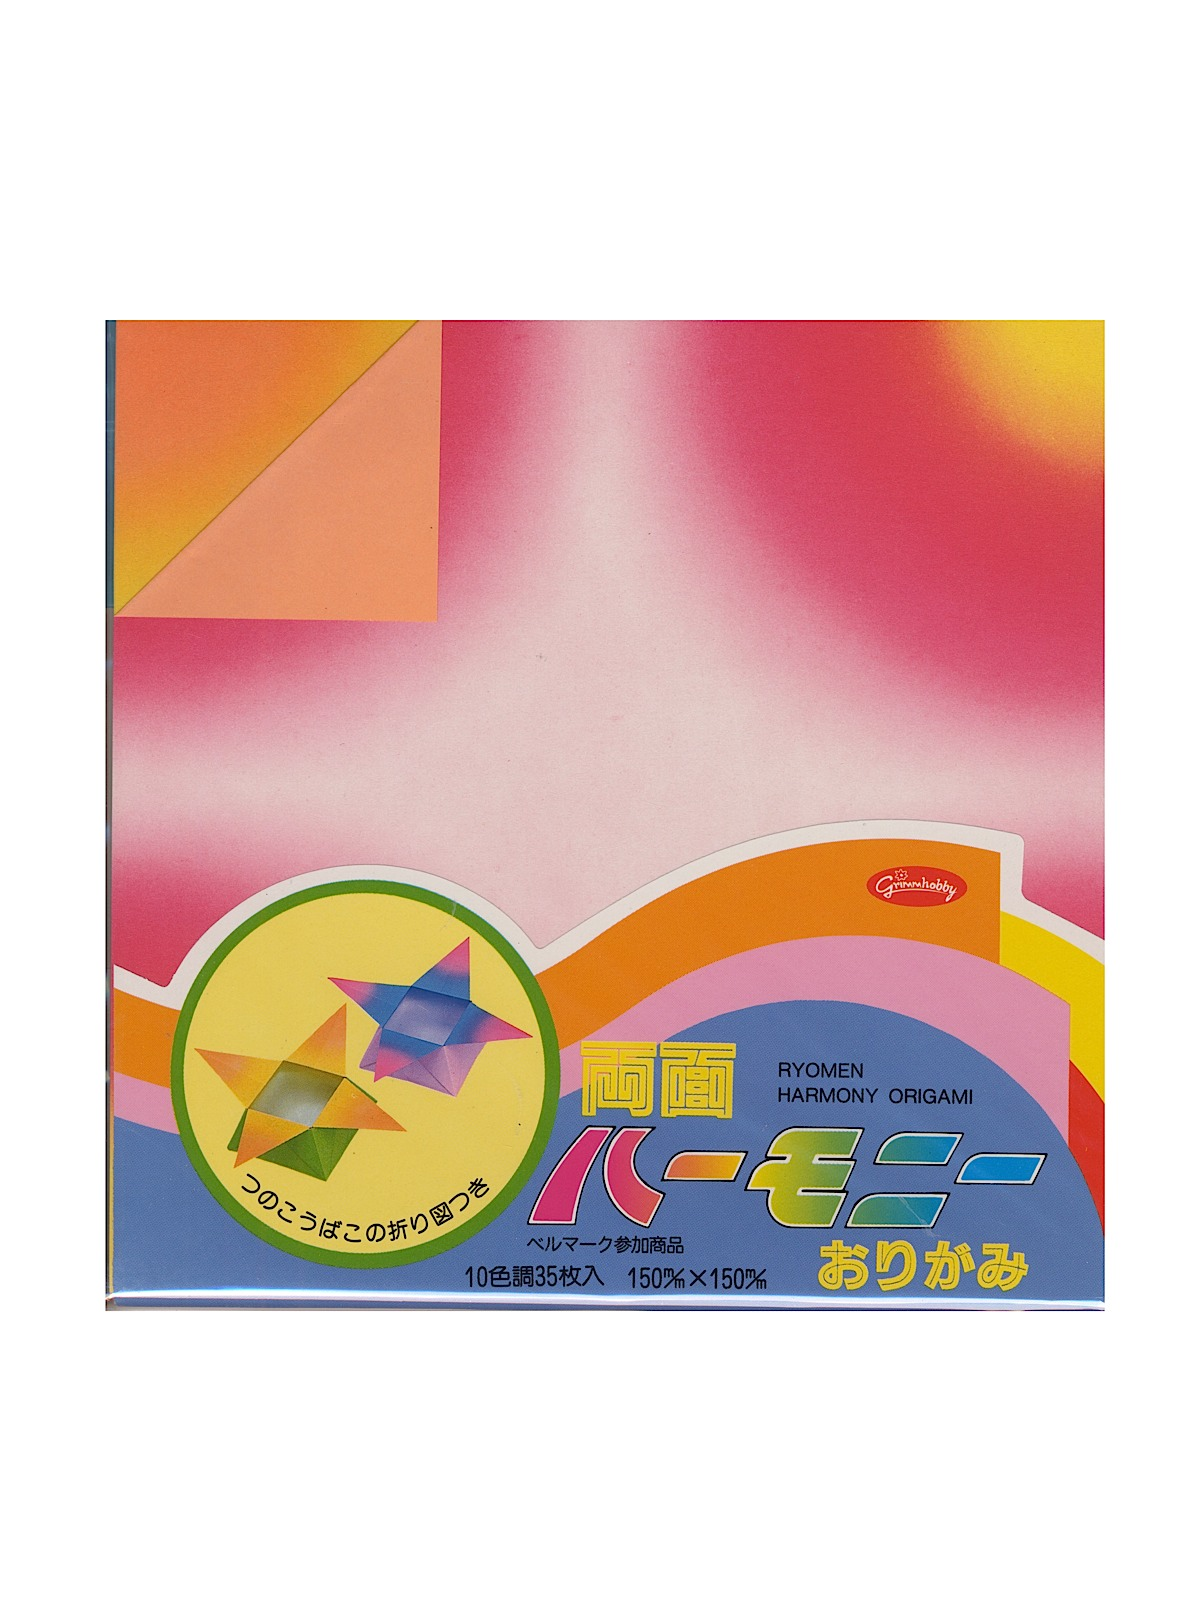 Origami Paper 5 7 8 In. X 5 7 8 In. Double Sided Harmony 35 Sheets